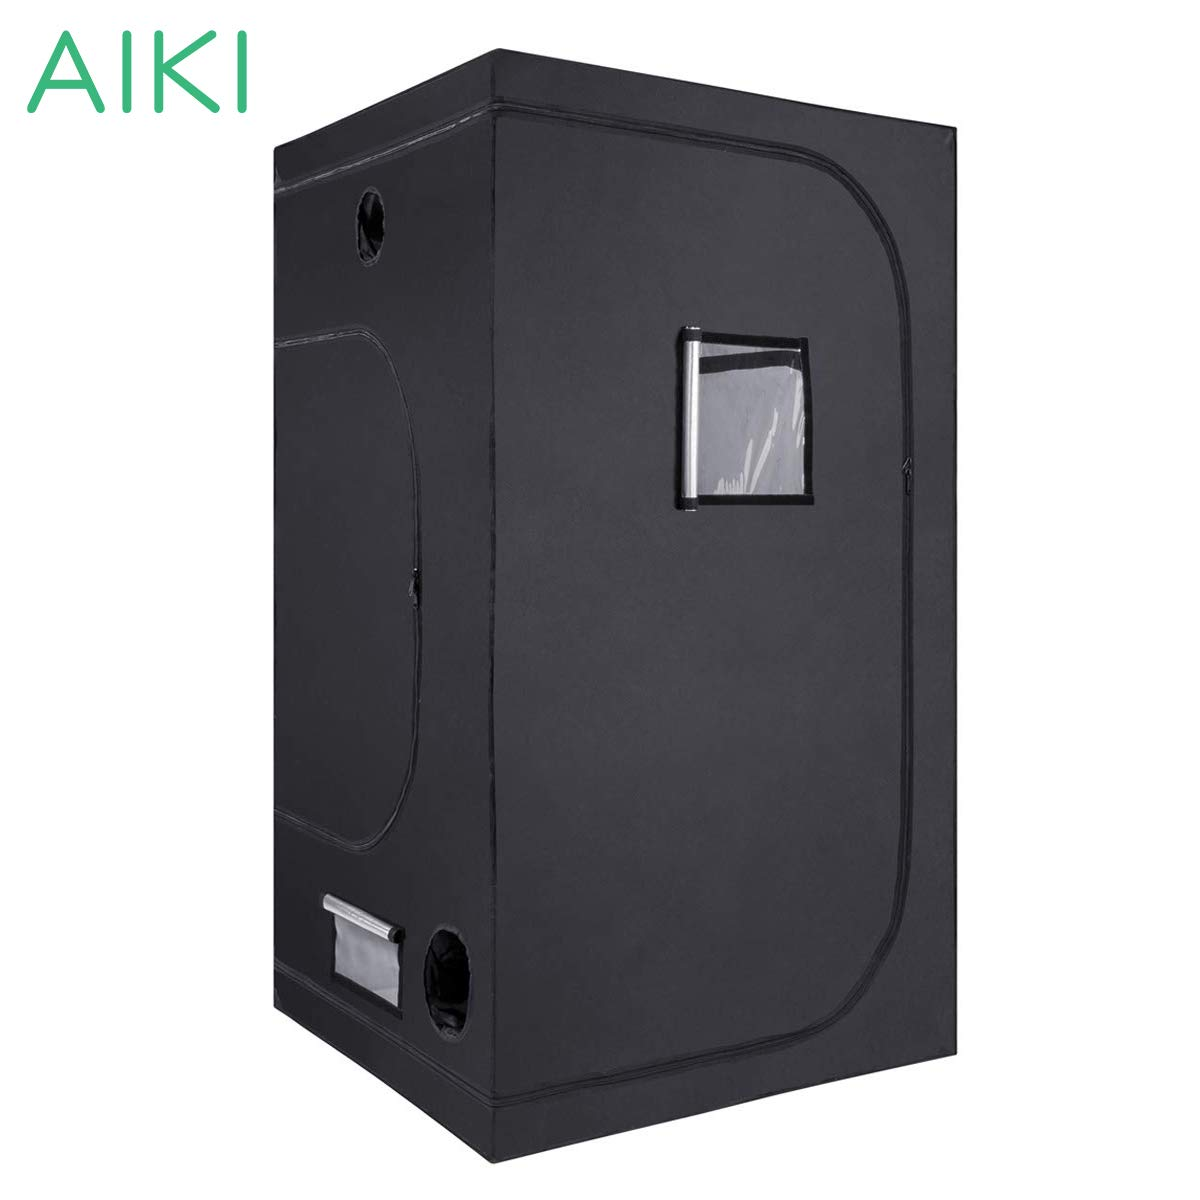 AIKI 40''x40''x80'' Reflective Mylar Hydroponic Grow Tent with Observation Window and Waterproof Floor Tray for Indoor Plant Growing 3x3 by AIKI (Image #1)